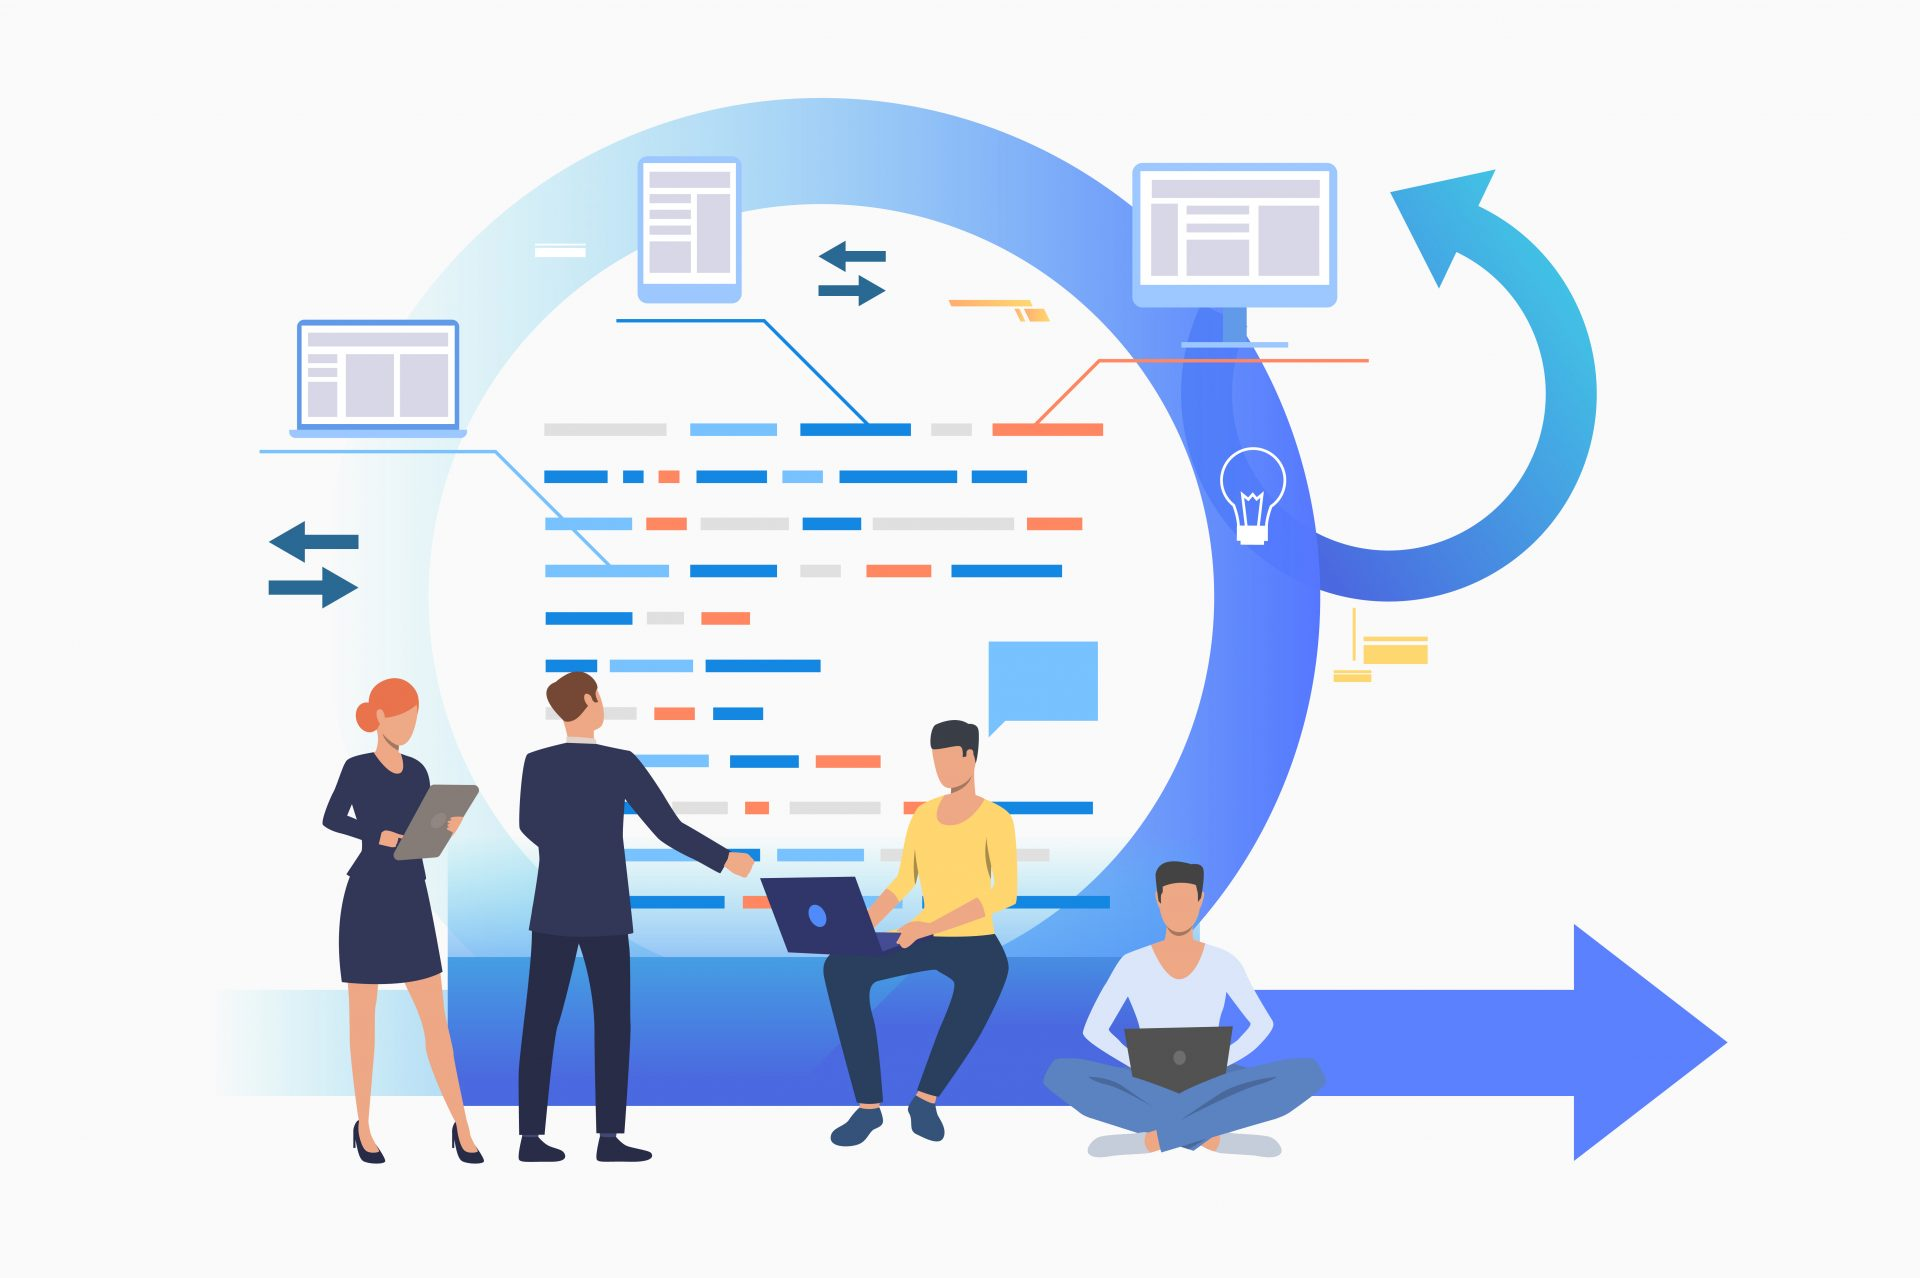 Teem discussing project at Kanban board. Scrum meeting, conversation, working on laptop. Business concept. Vector illustration can be used for presentation slides, landing pages, posters